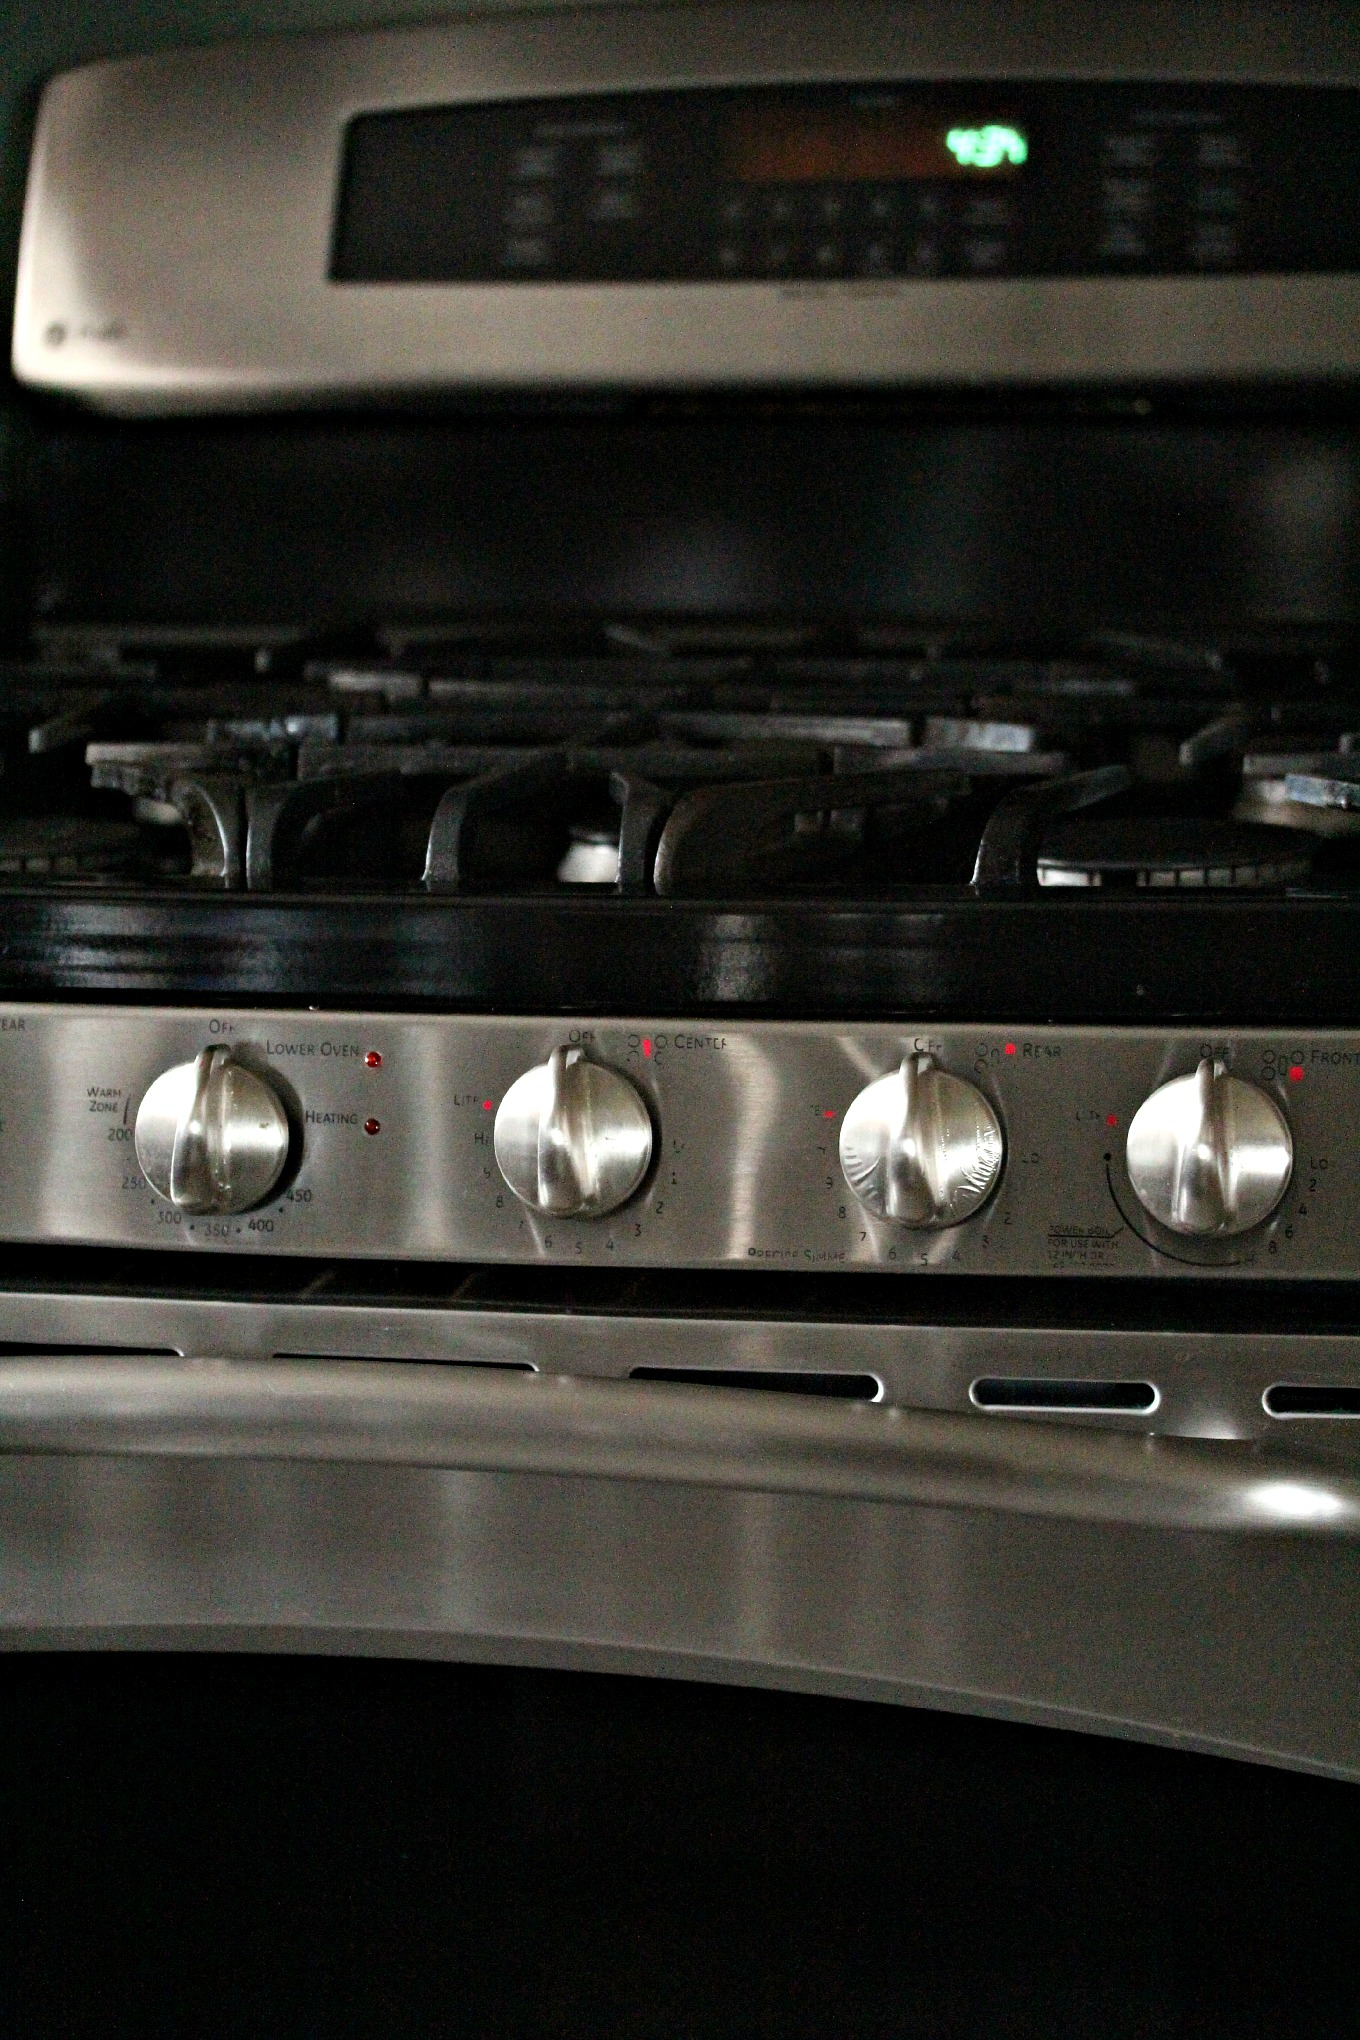 G.E. Appliances Stove